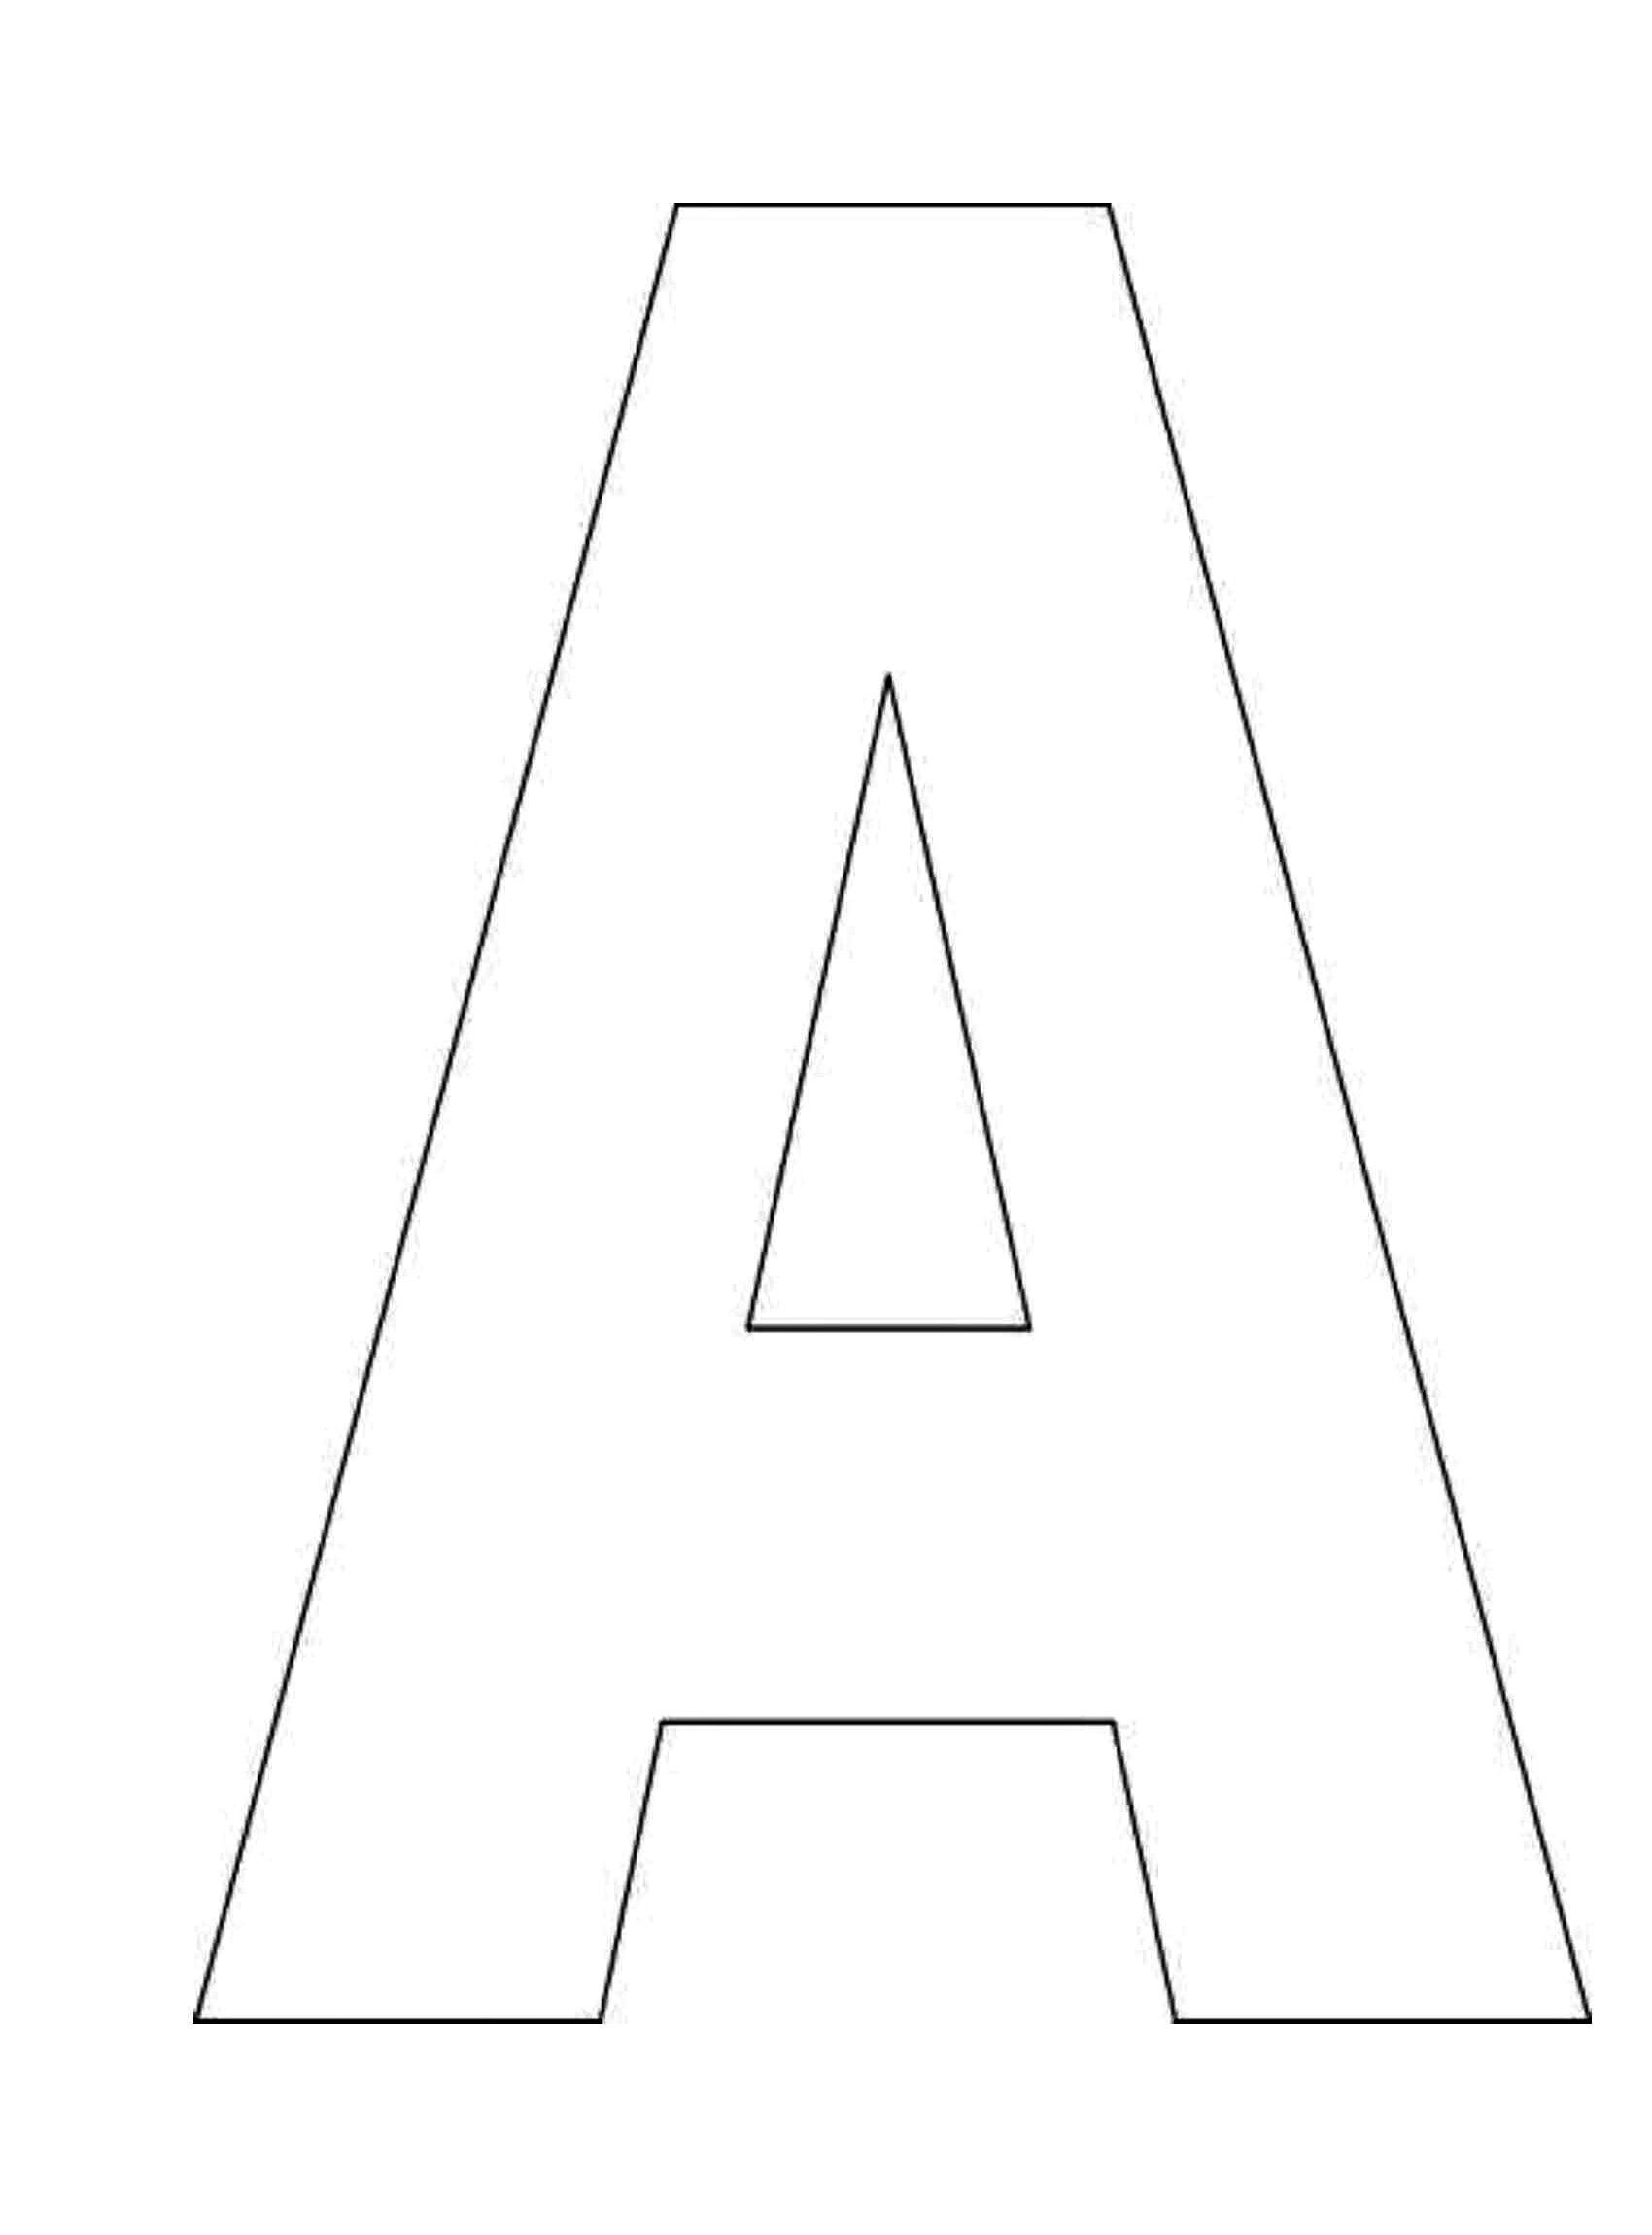 Captivating Printable Alphabet Letter Templates! Free Alphabet Letter Templates To Print Throughout Free Letters Templates